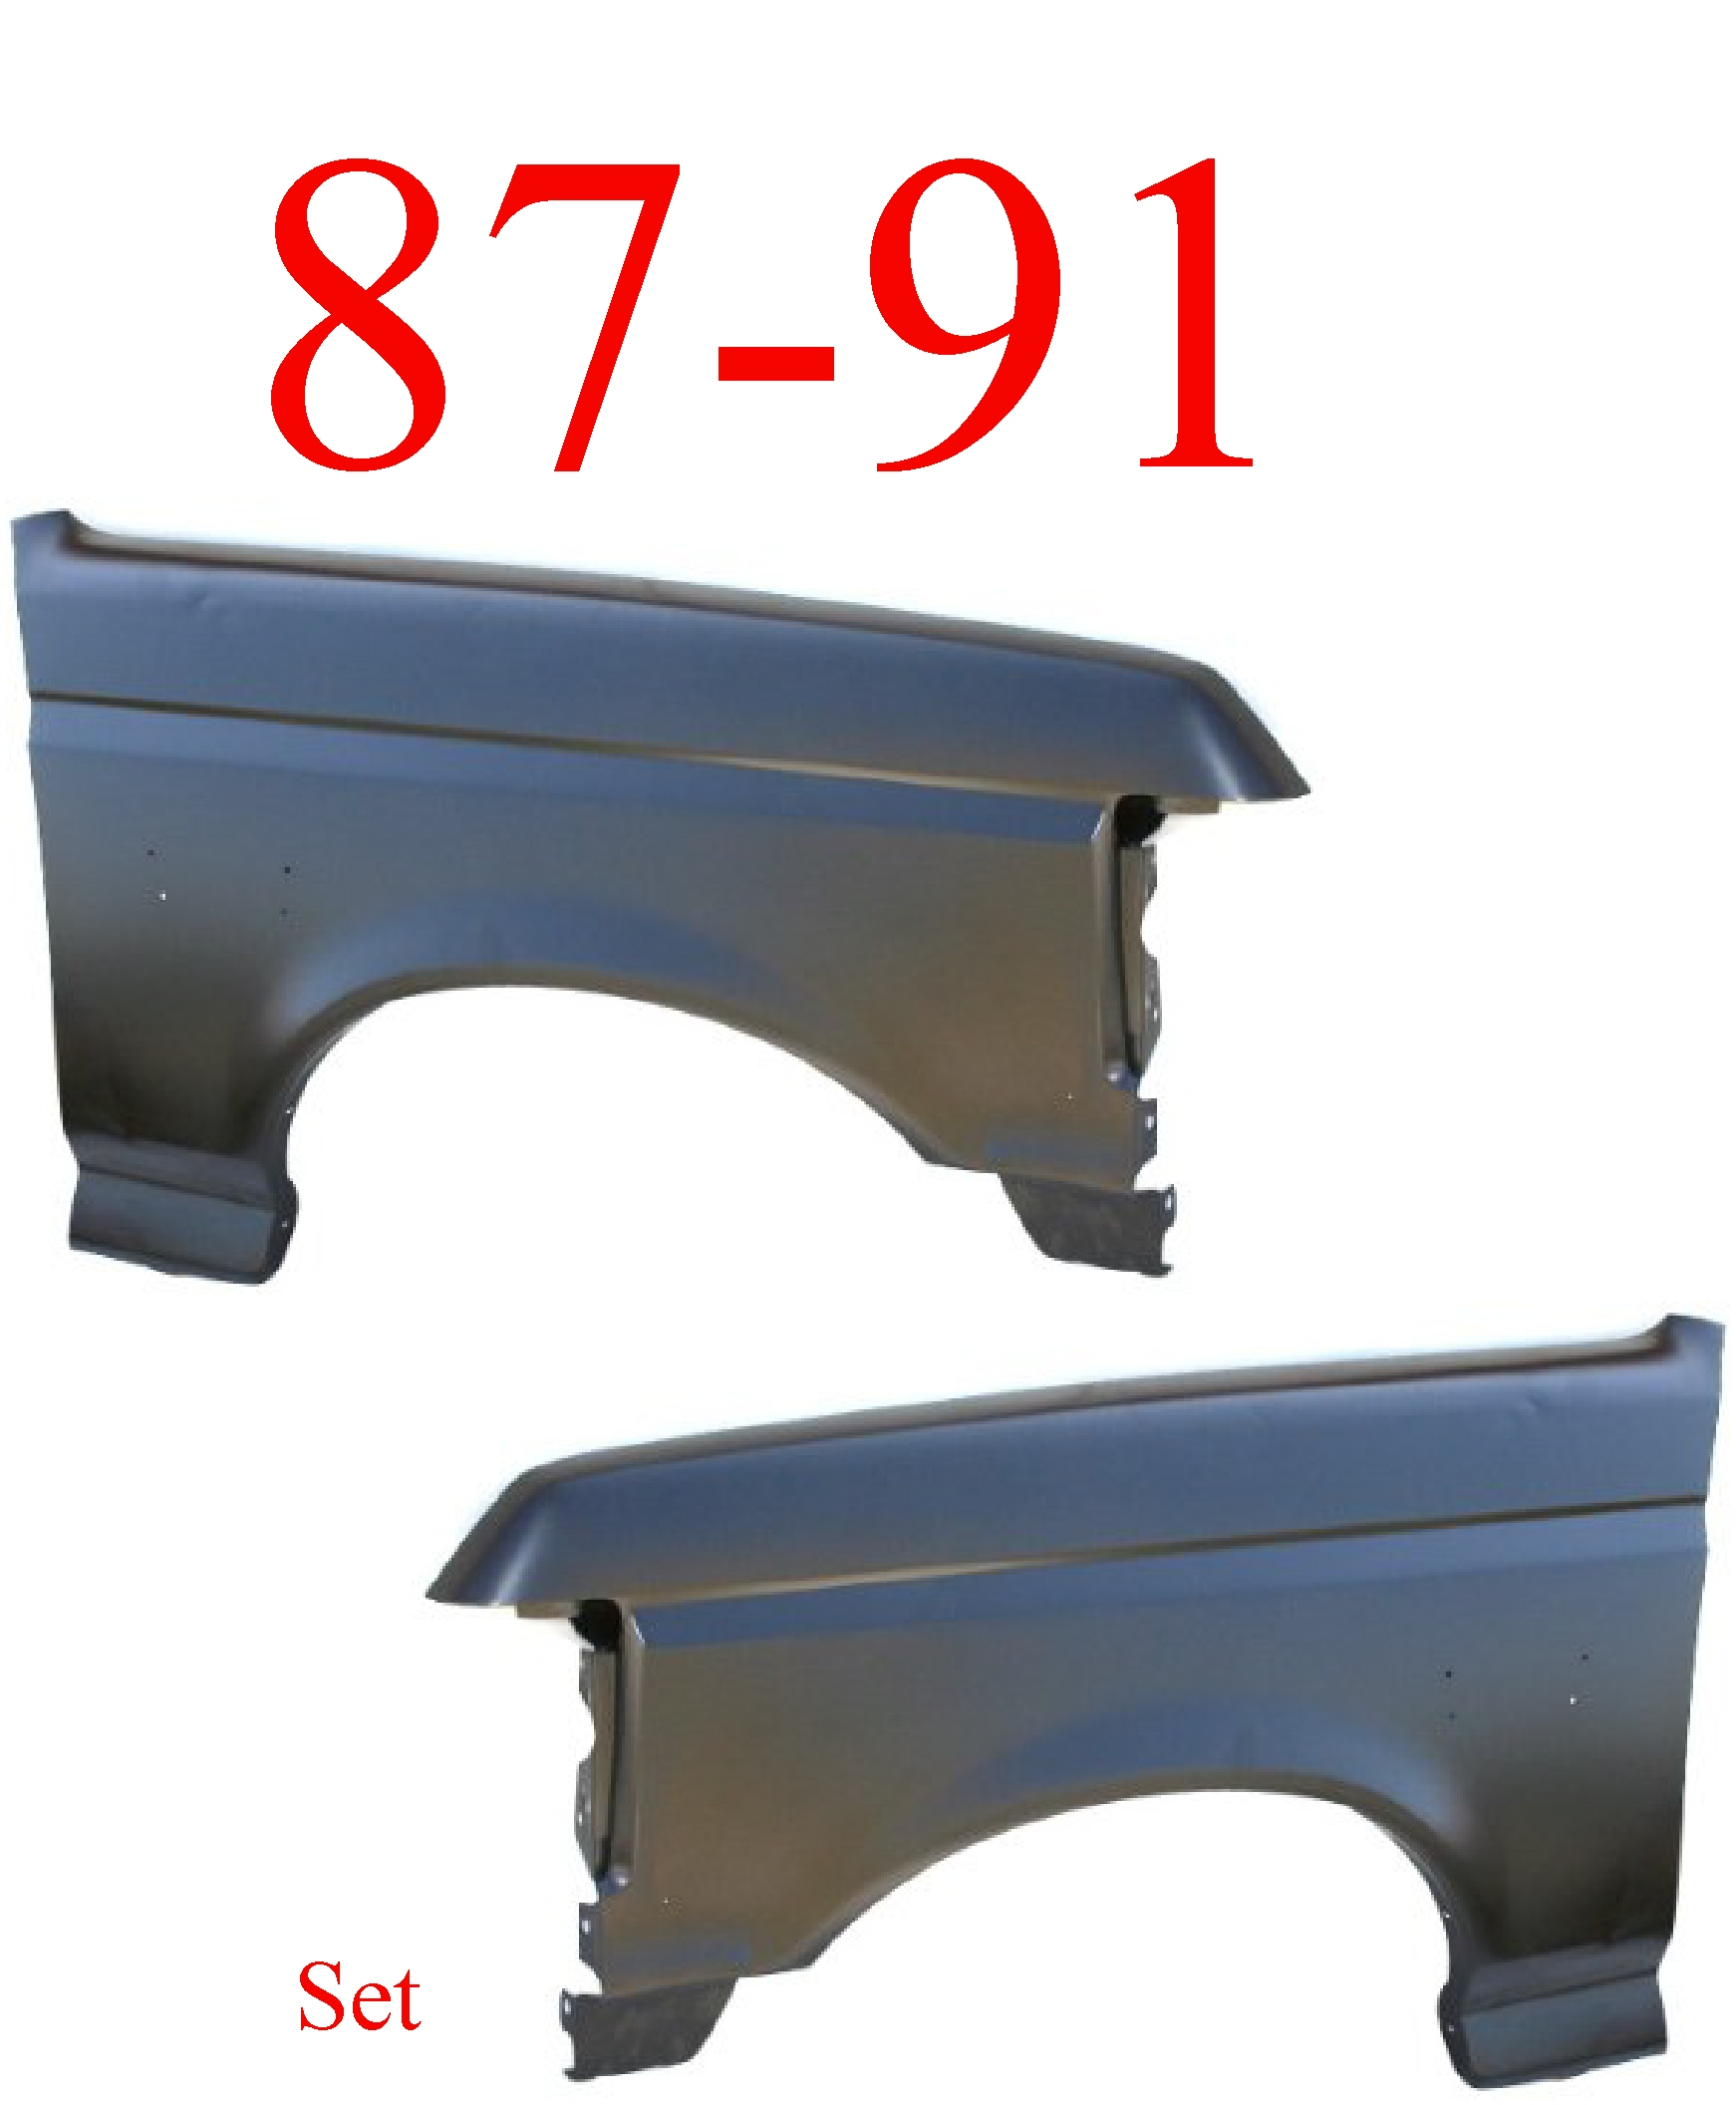 87-91 Ford Truck Front Fender Set